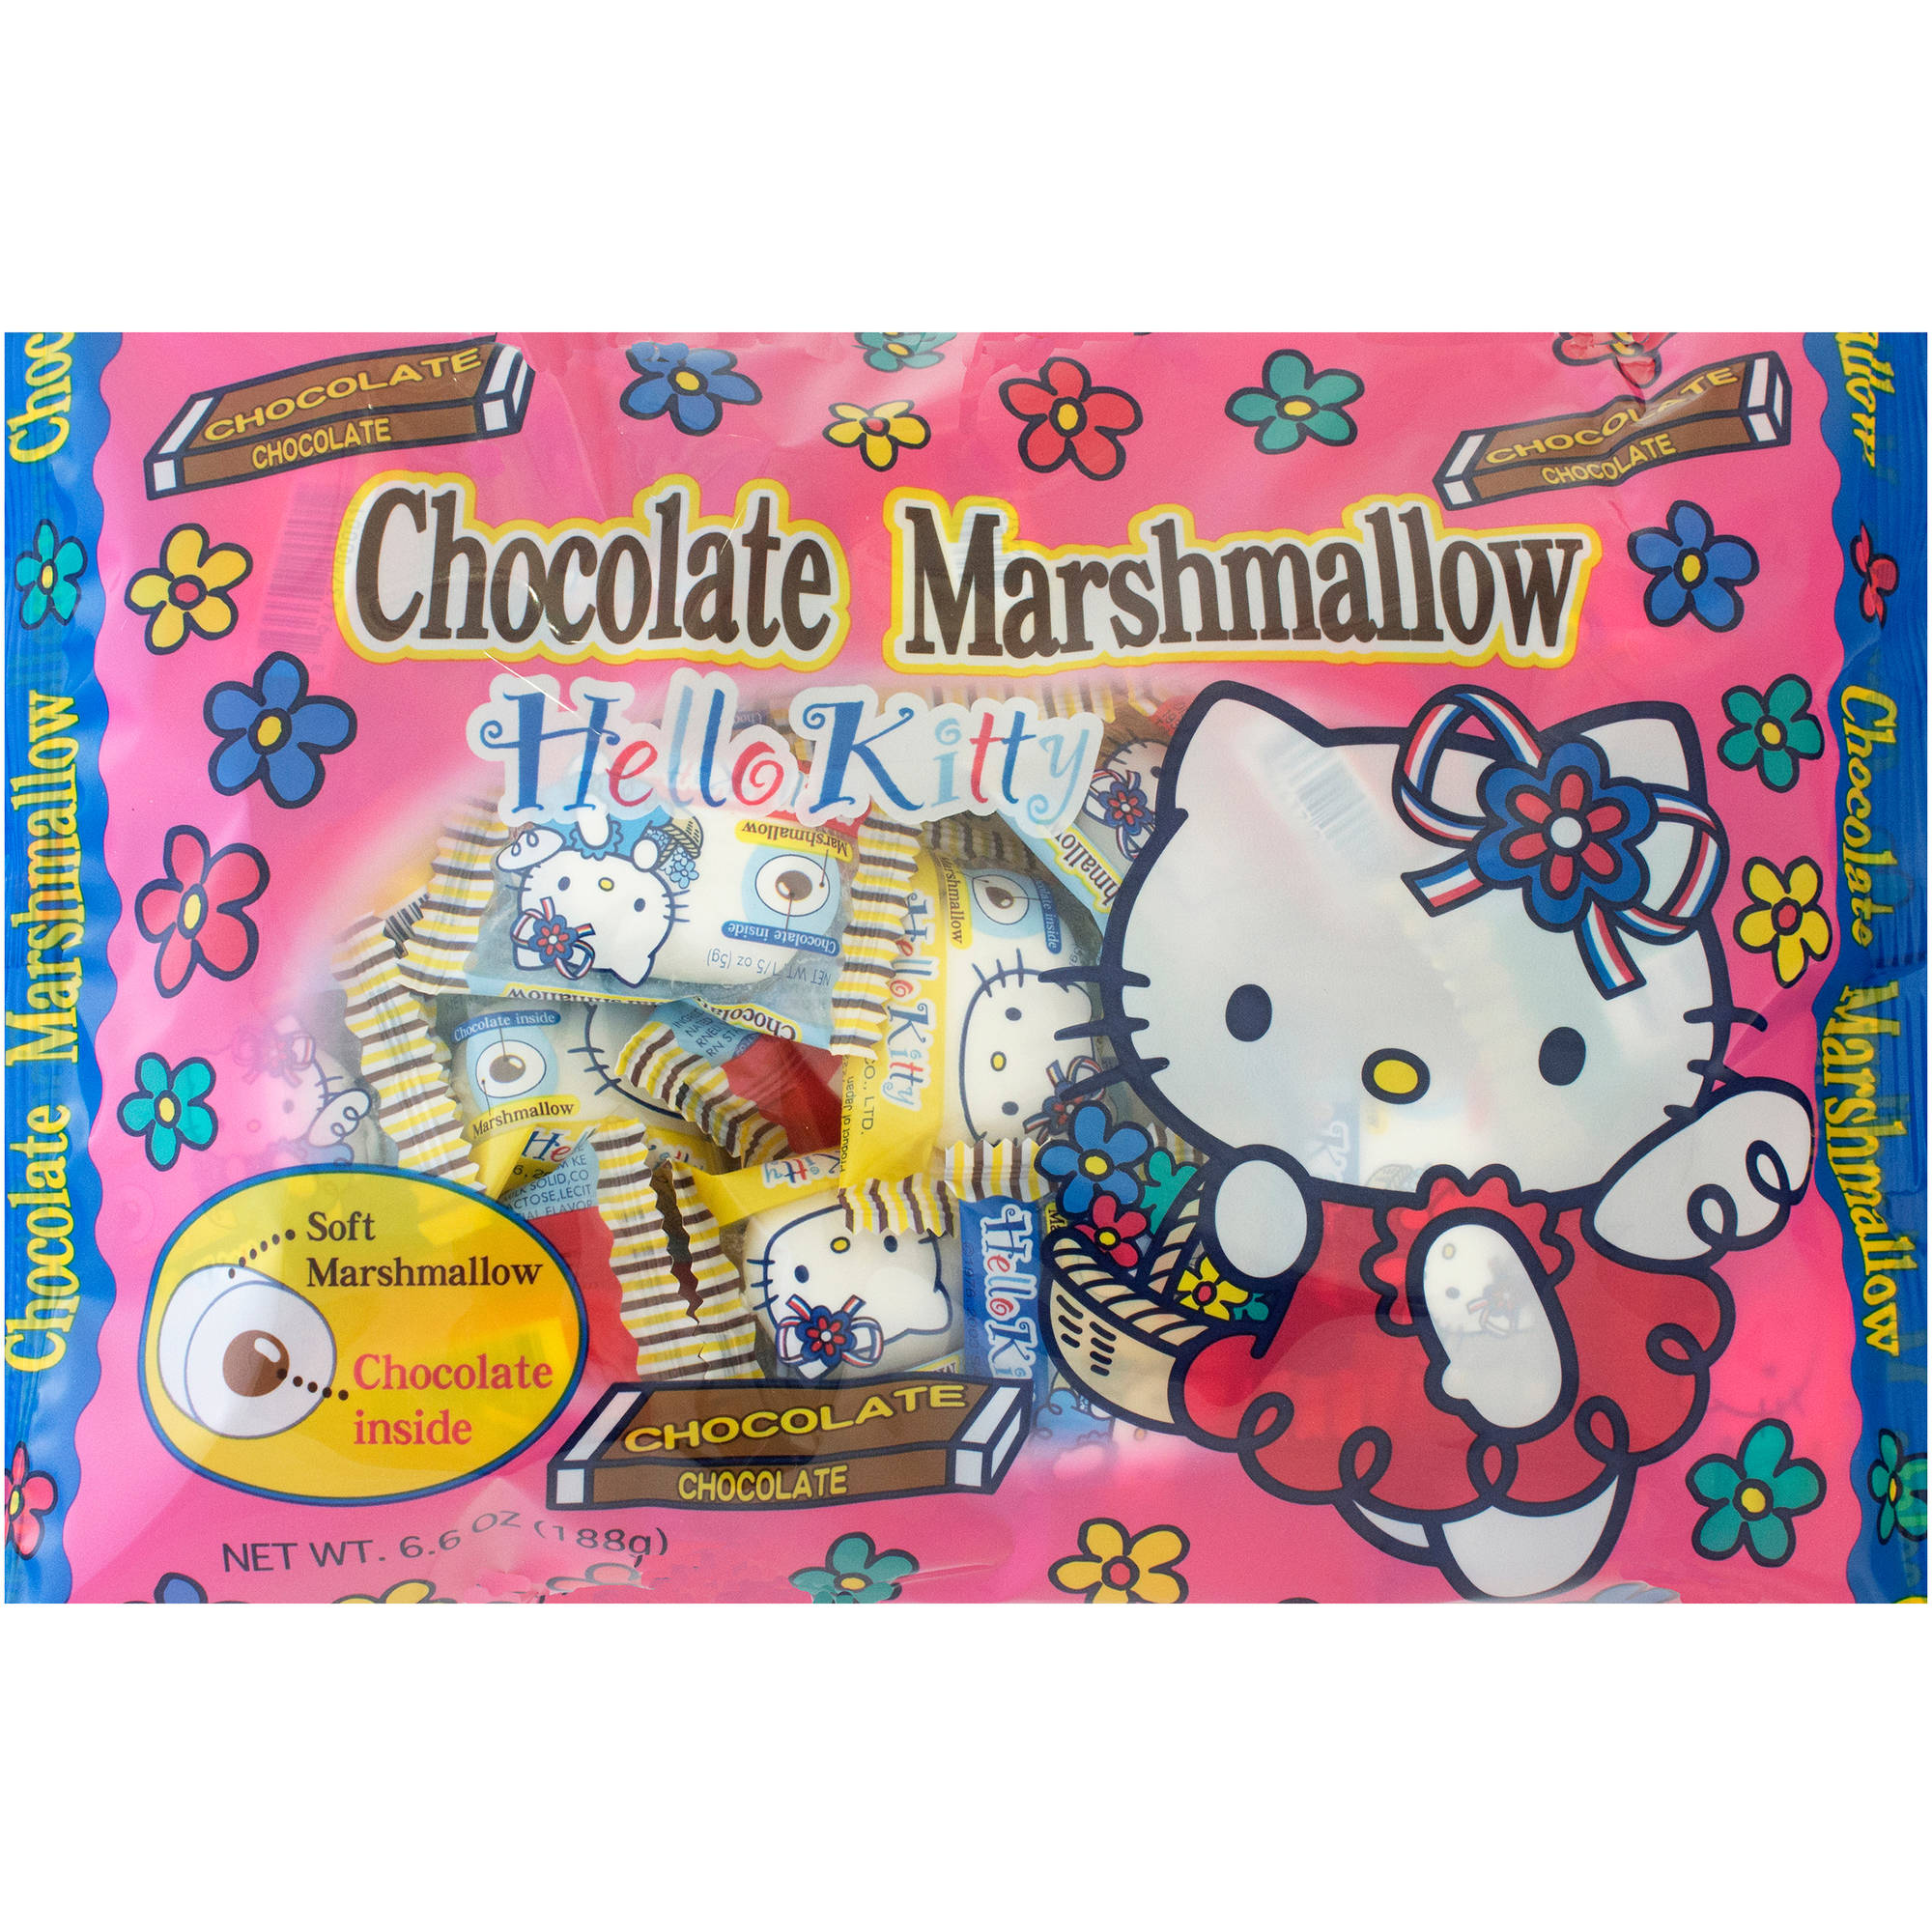 Hello Kitty Chocolate Marshmallows, 6.6 oz